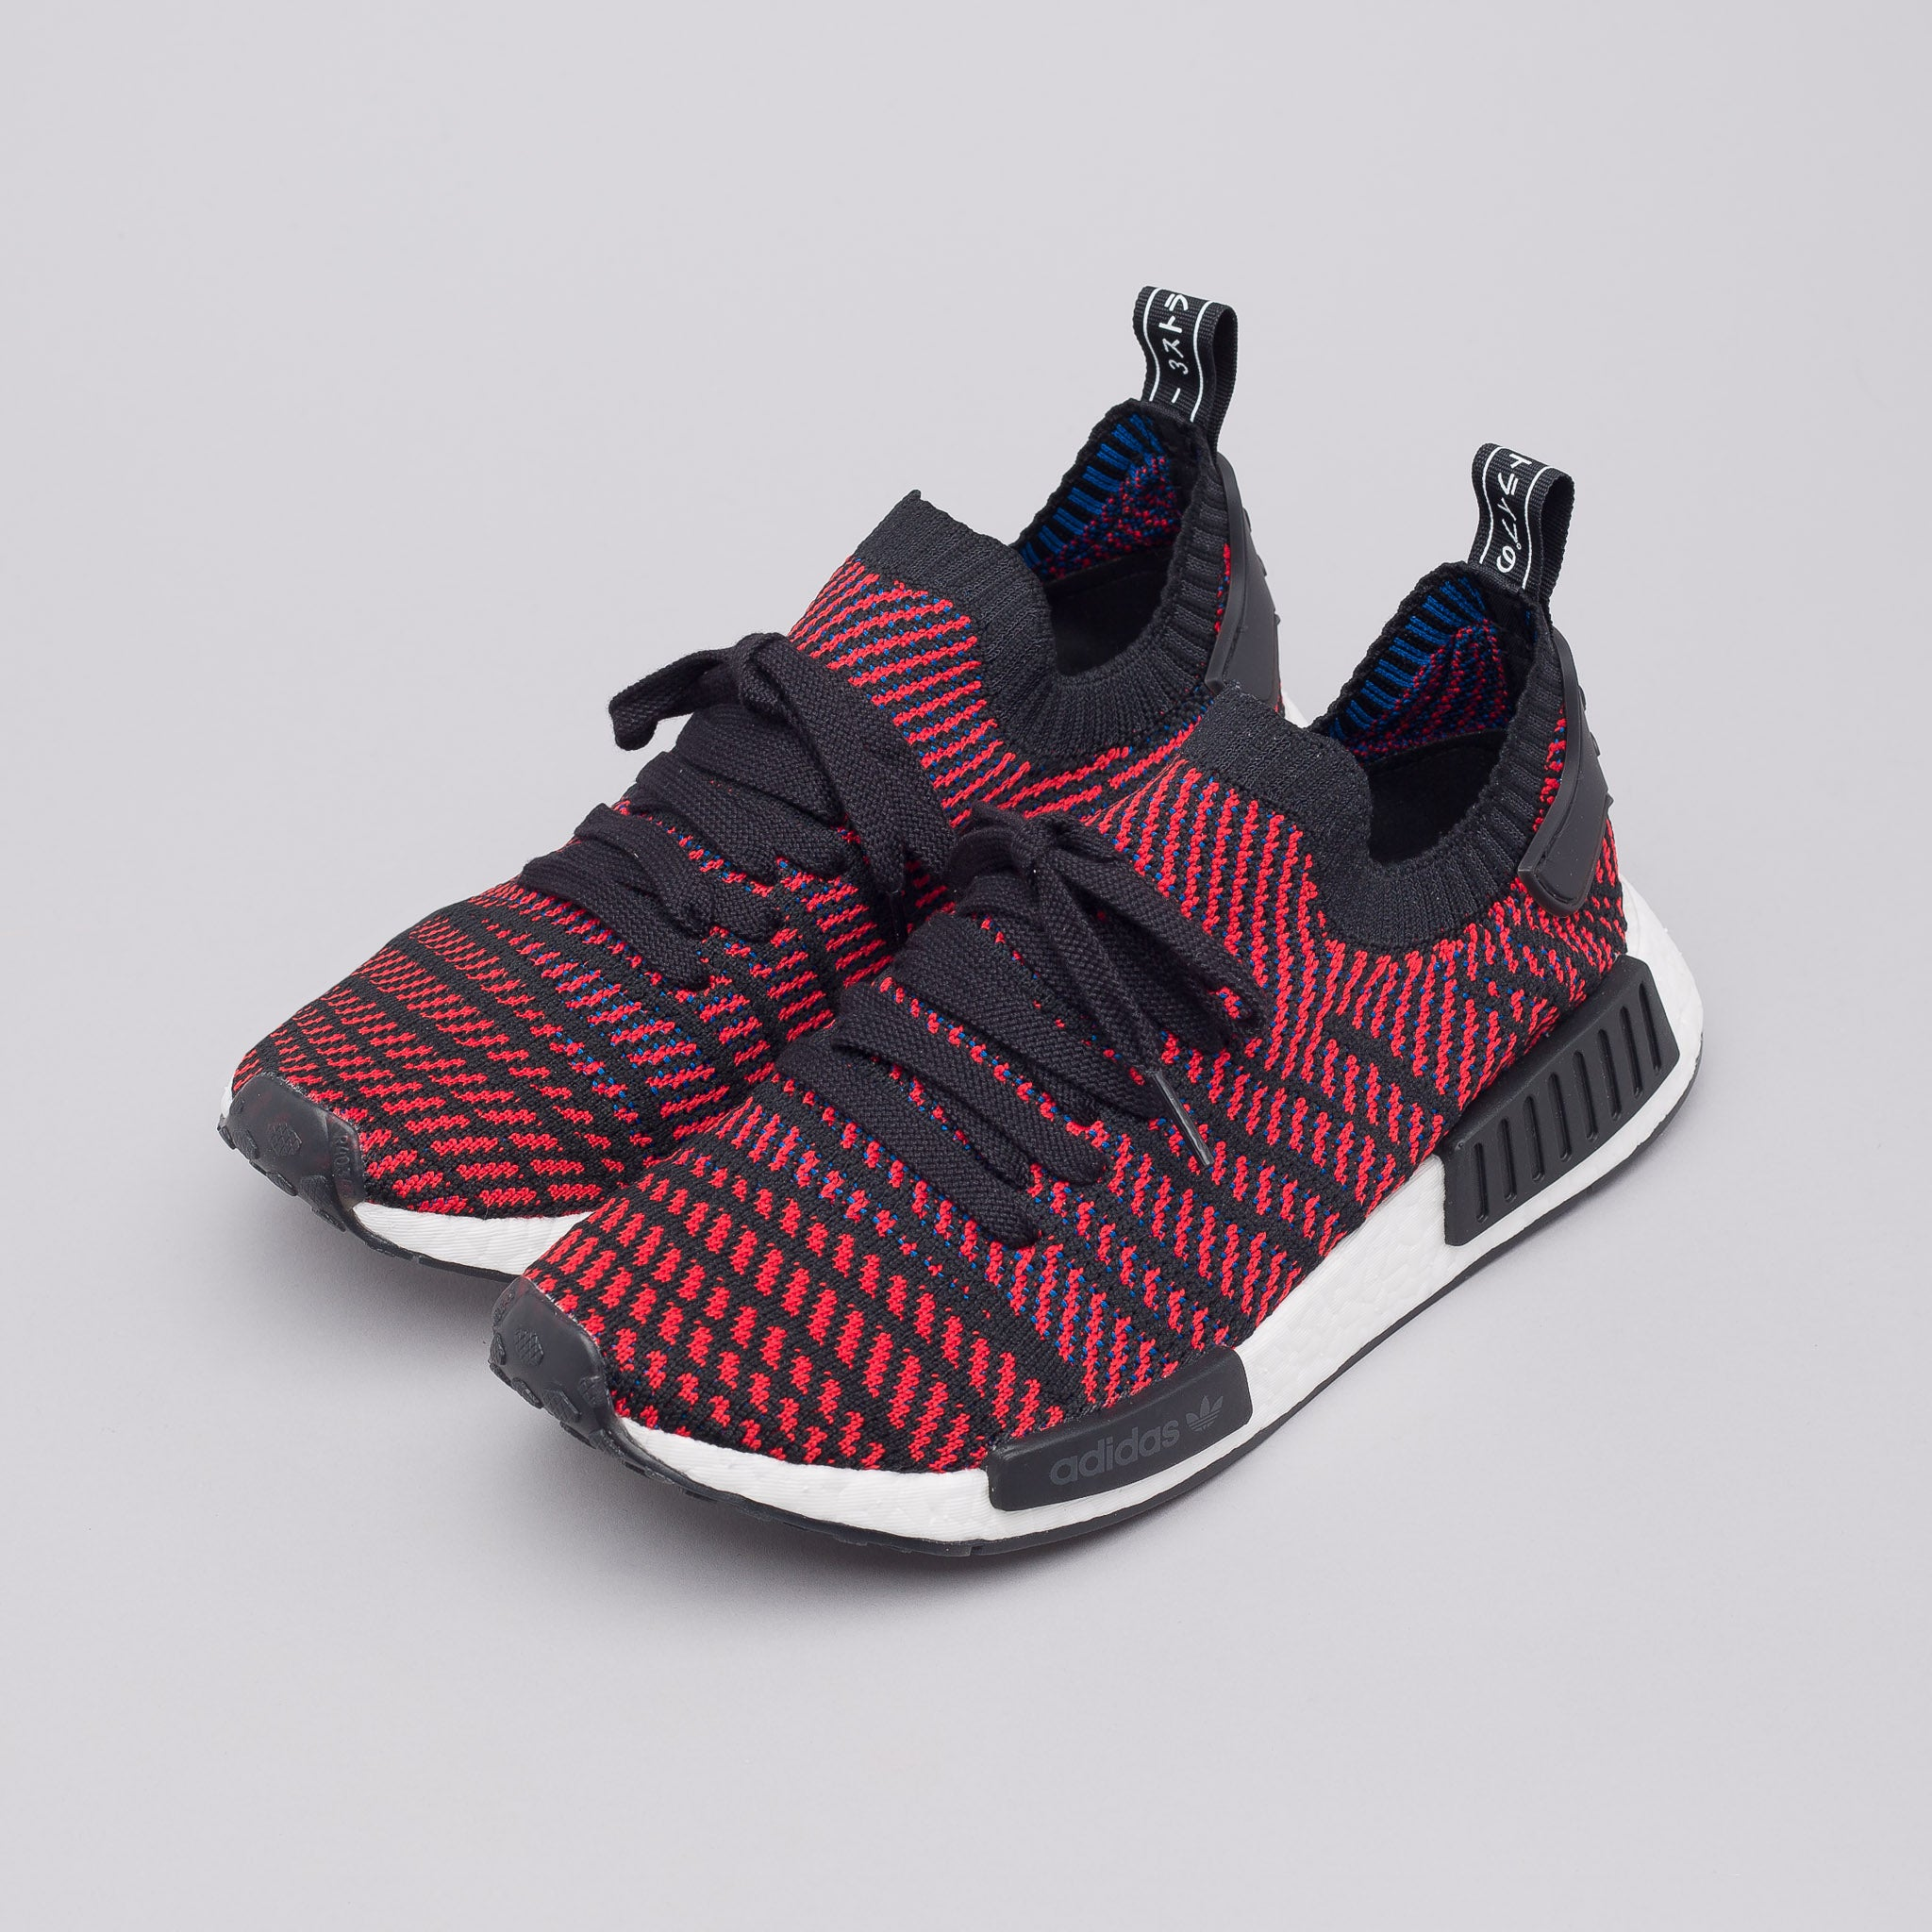 The adidas NMD R1 Primeknit Releasing In Utility